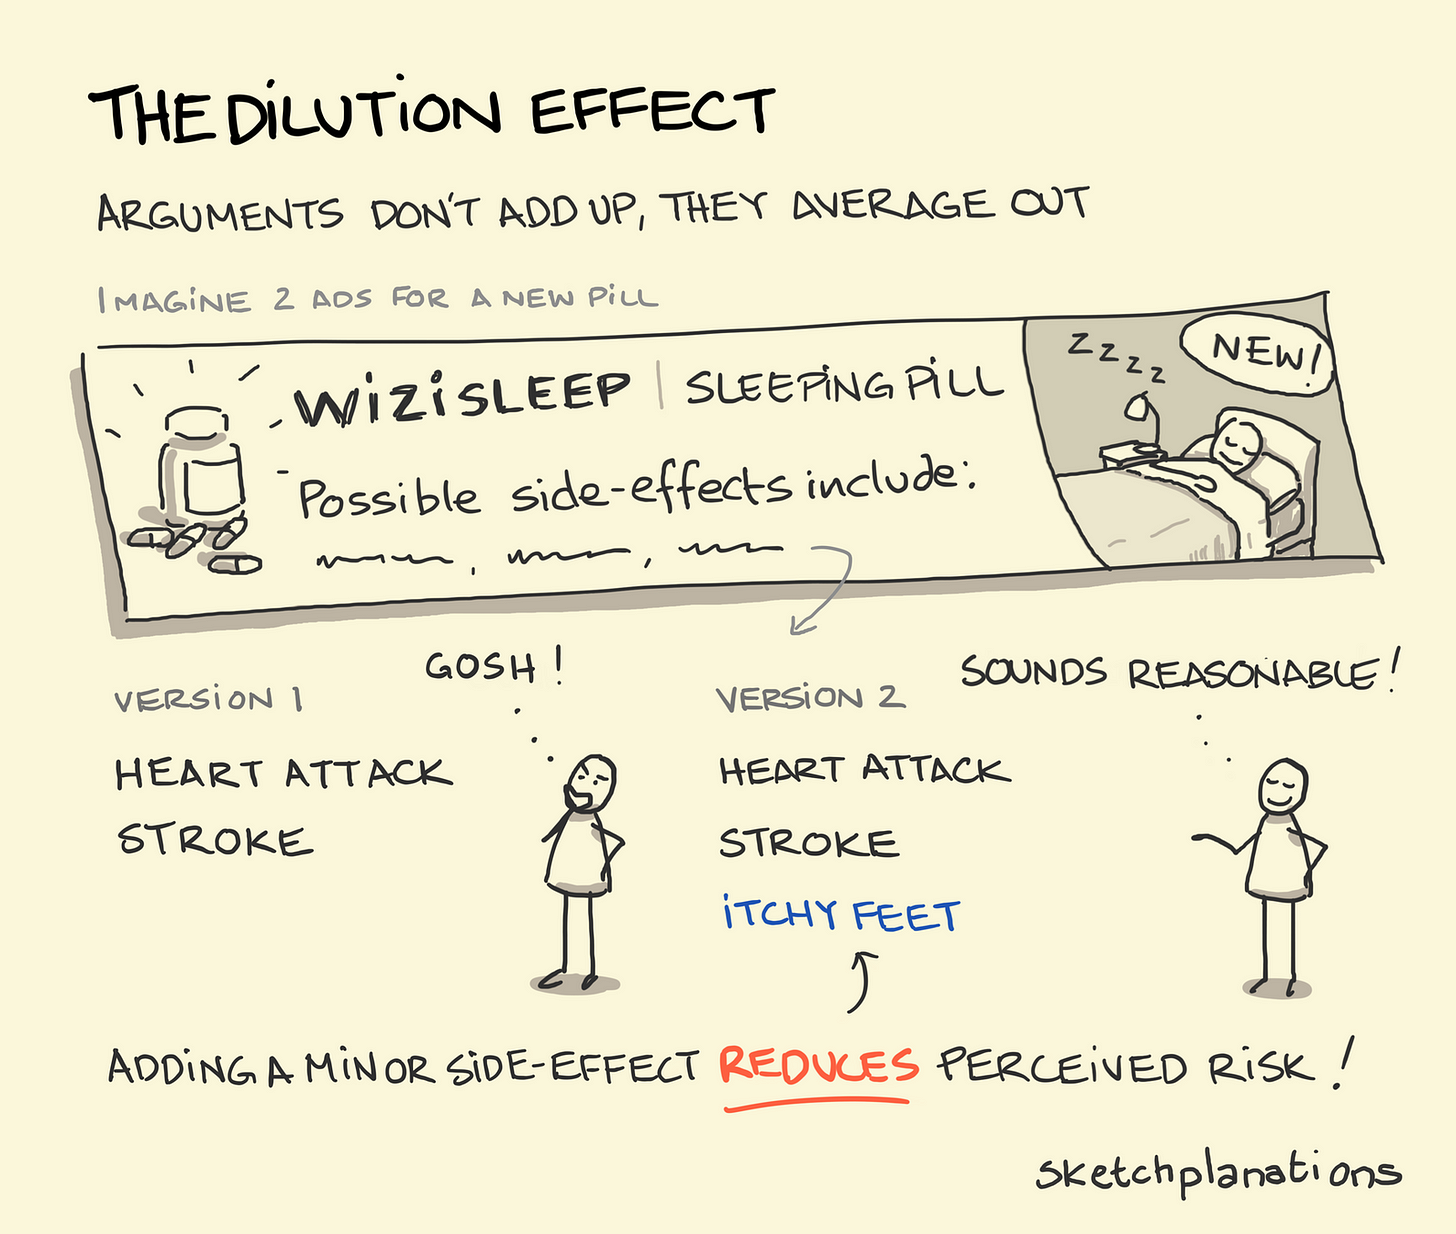 The dilution effect - Sketchplanations